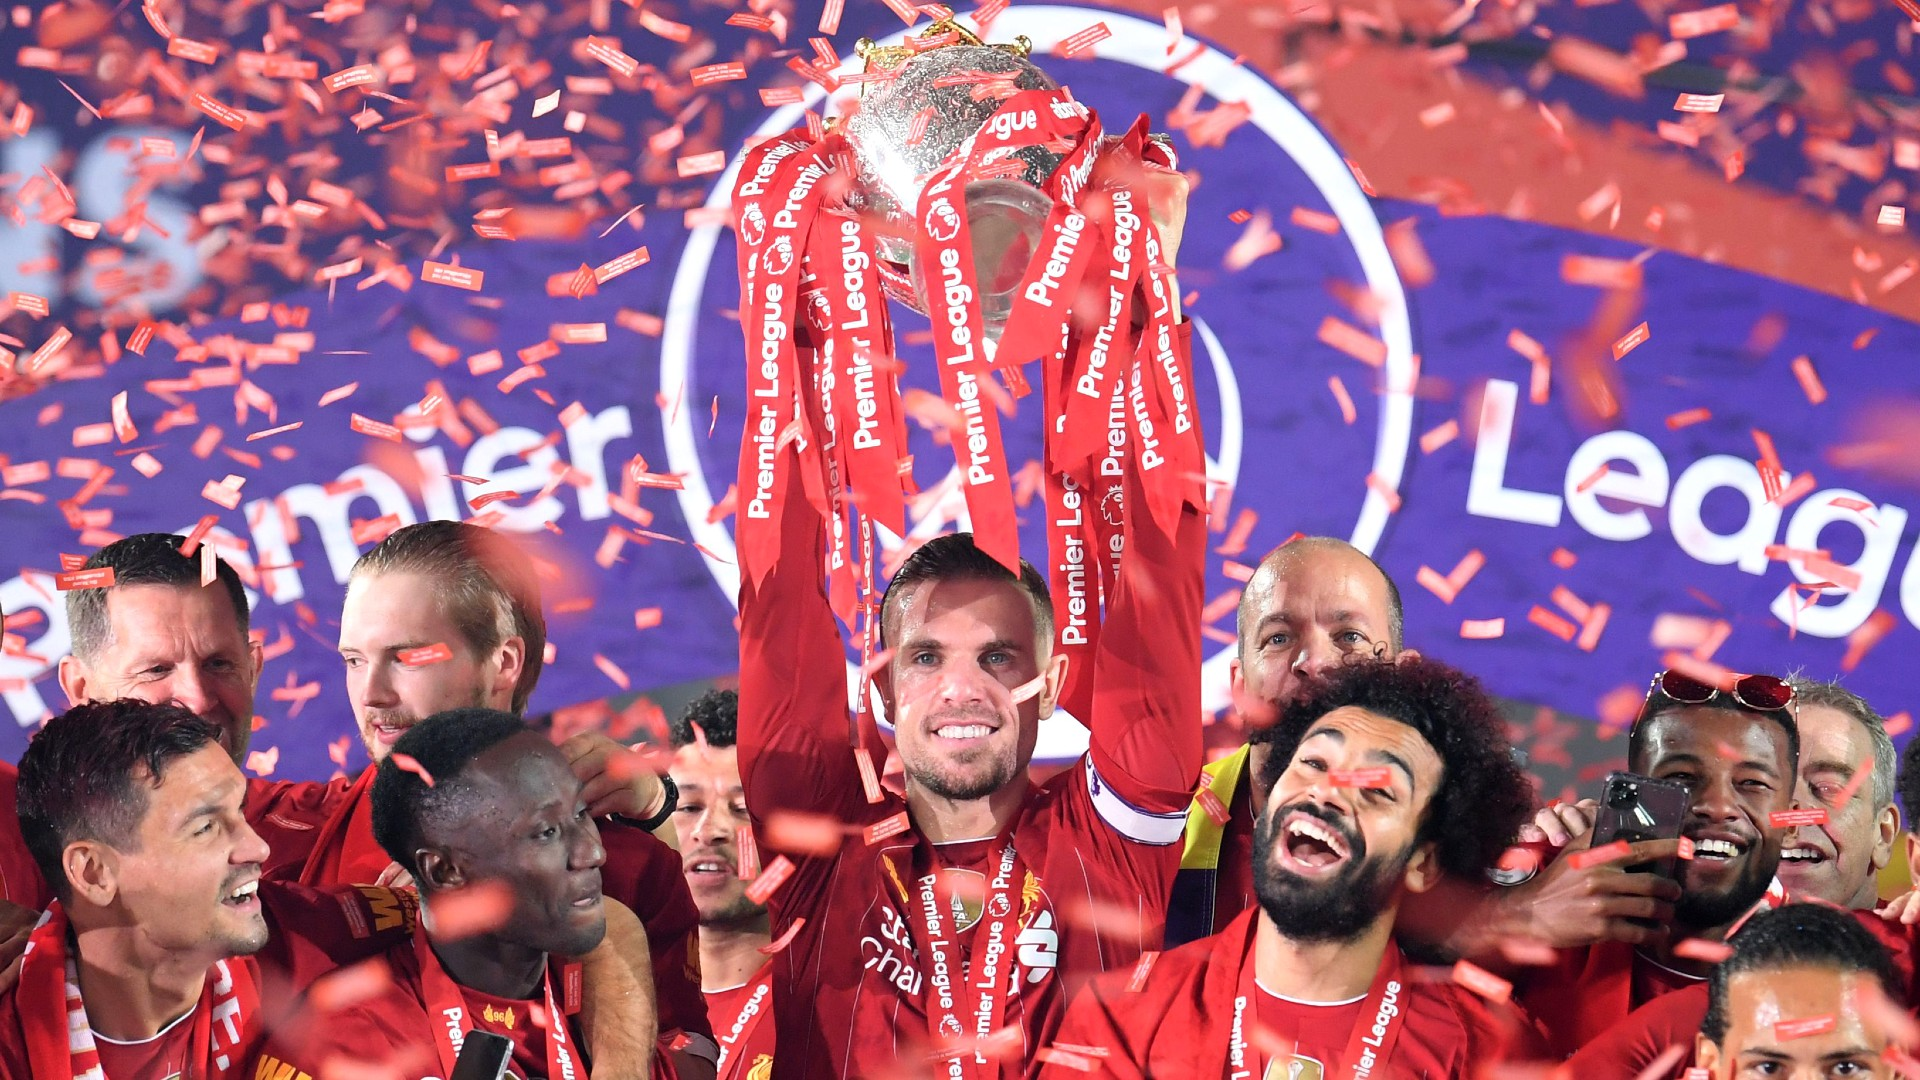 Winning the 2019/2020 English Premier League (EPL) title has not quelled Liverpool's hunger for silverware, team captain Jordan Henderson said on Friday. The England international said the Reds would continue to push for trophies in the new season. Liverpool ended their 30-year wait for a top-flight title last season, finishing 18 points clear of Pep […]